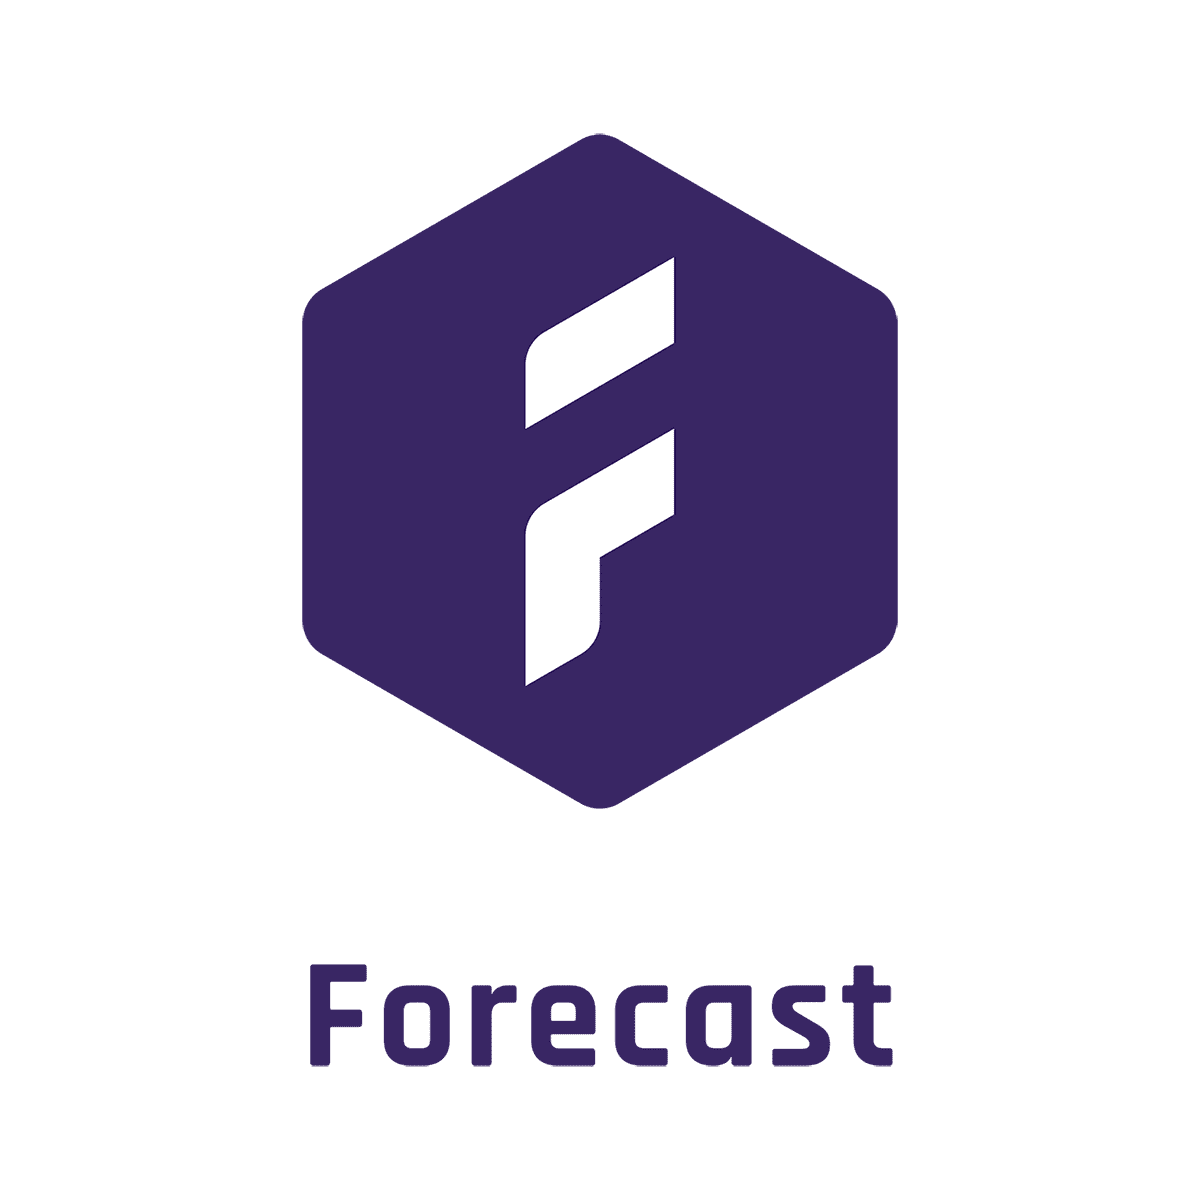 resource scheduling tool / software - Forecast